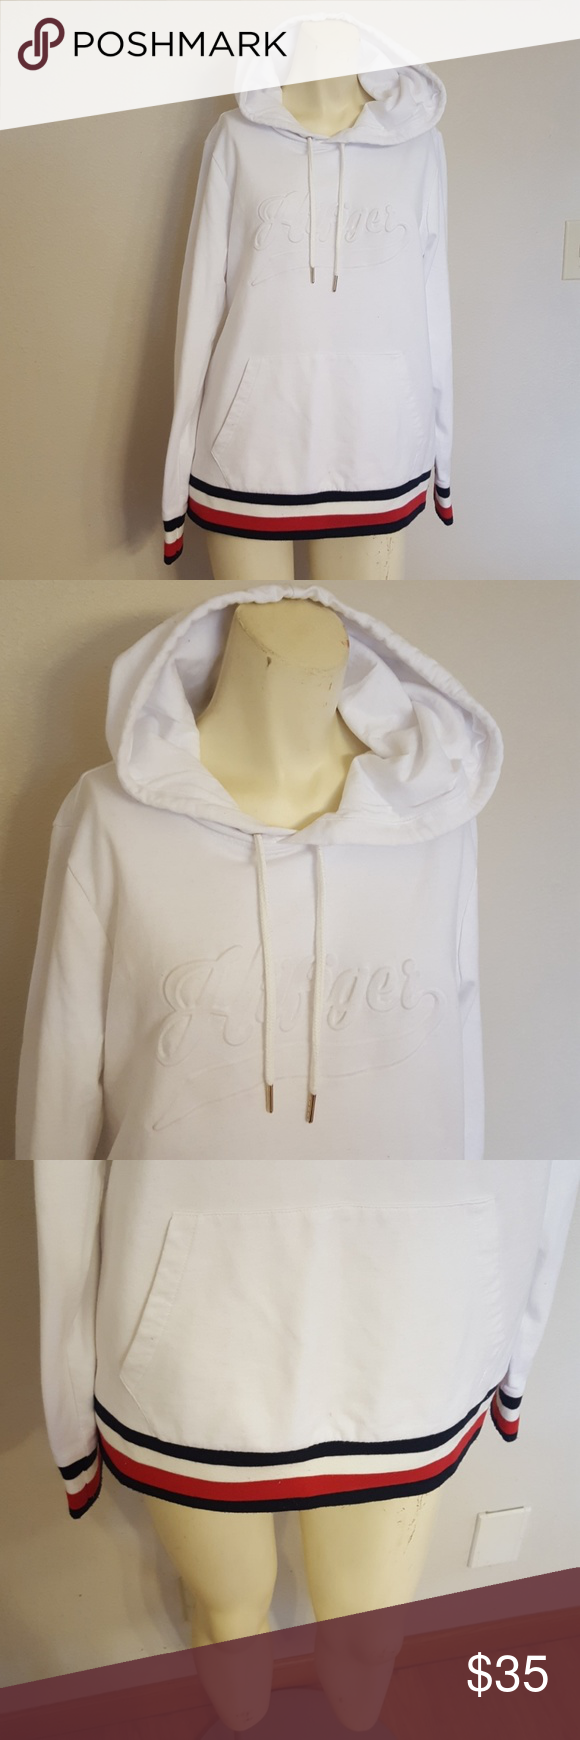 Size L Tommy Hilfiger classic white hoodie White hoodie